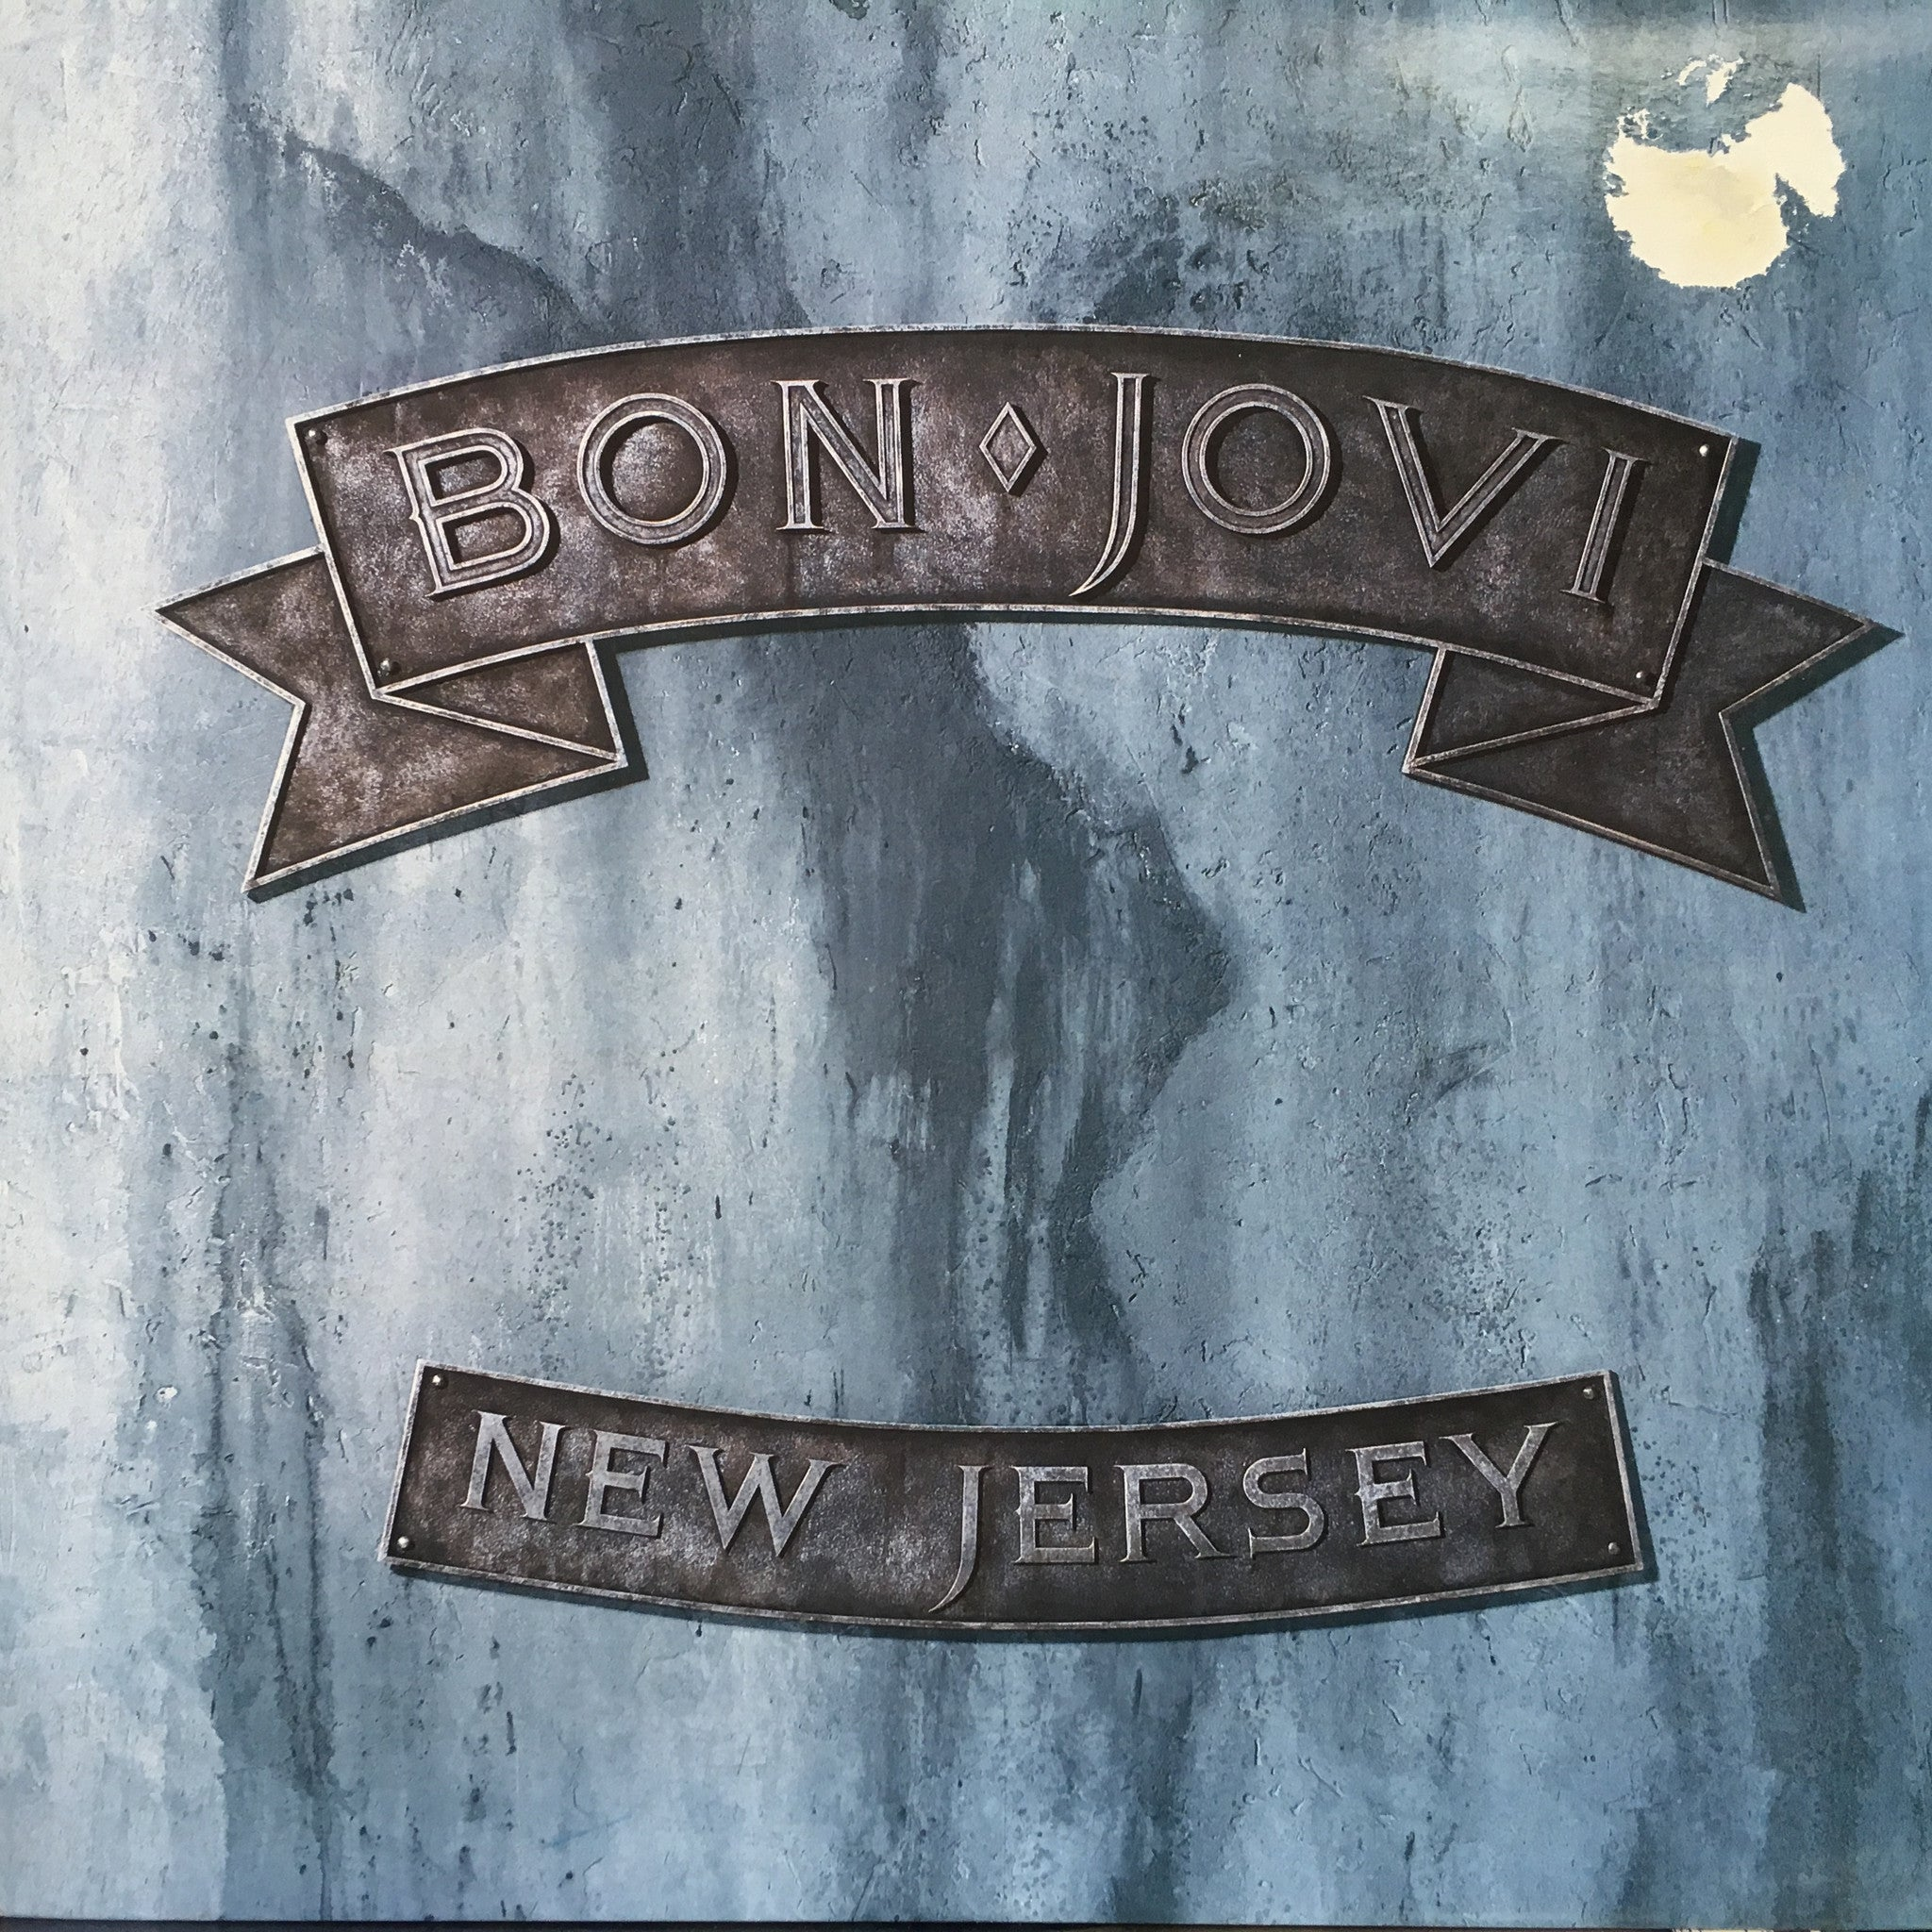 Bon jovi new jersey lp ex cover g relics music for New jersey house music